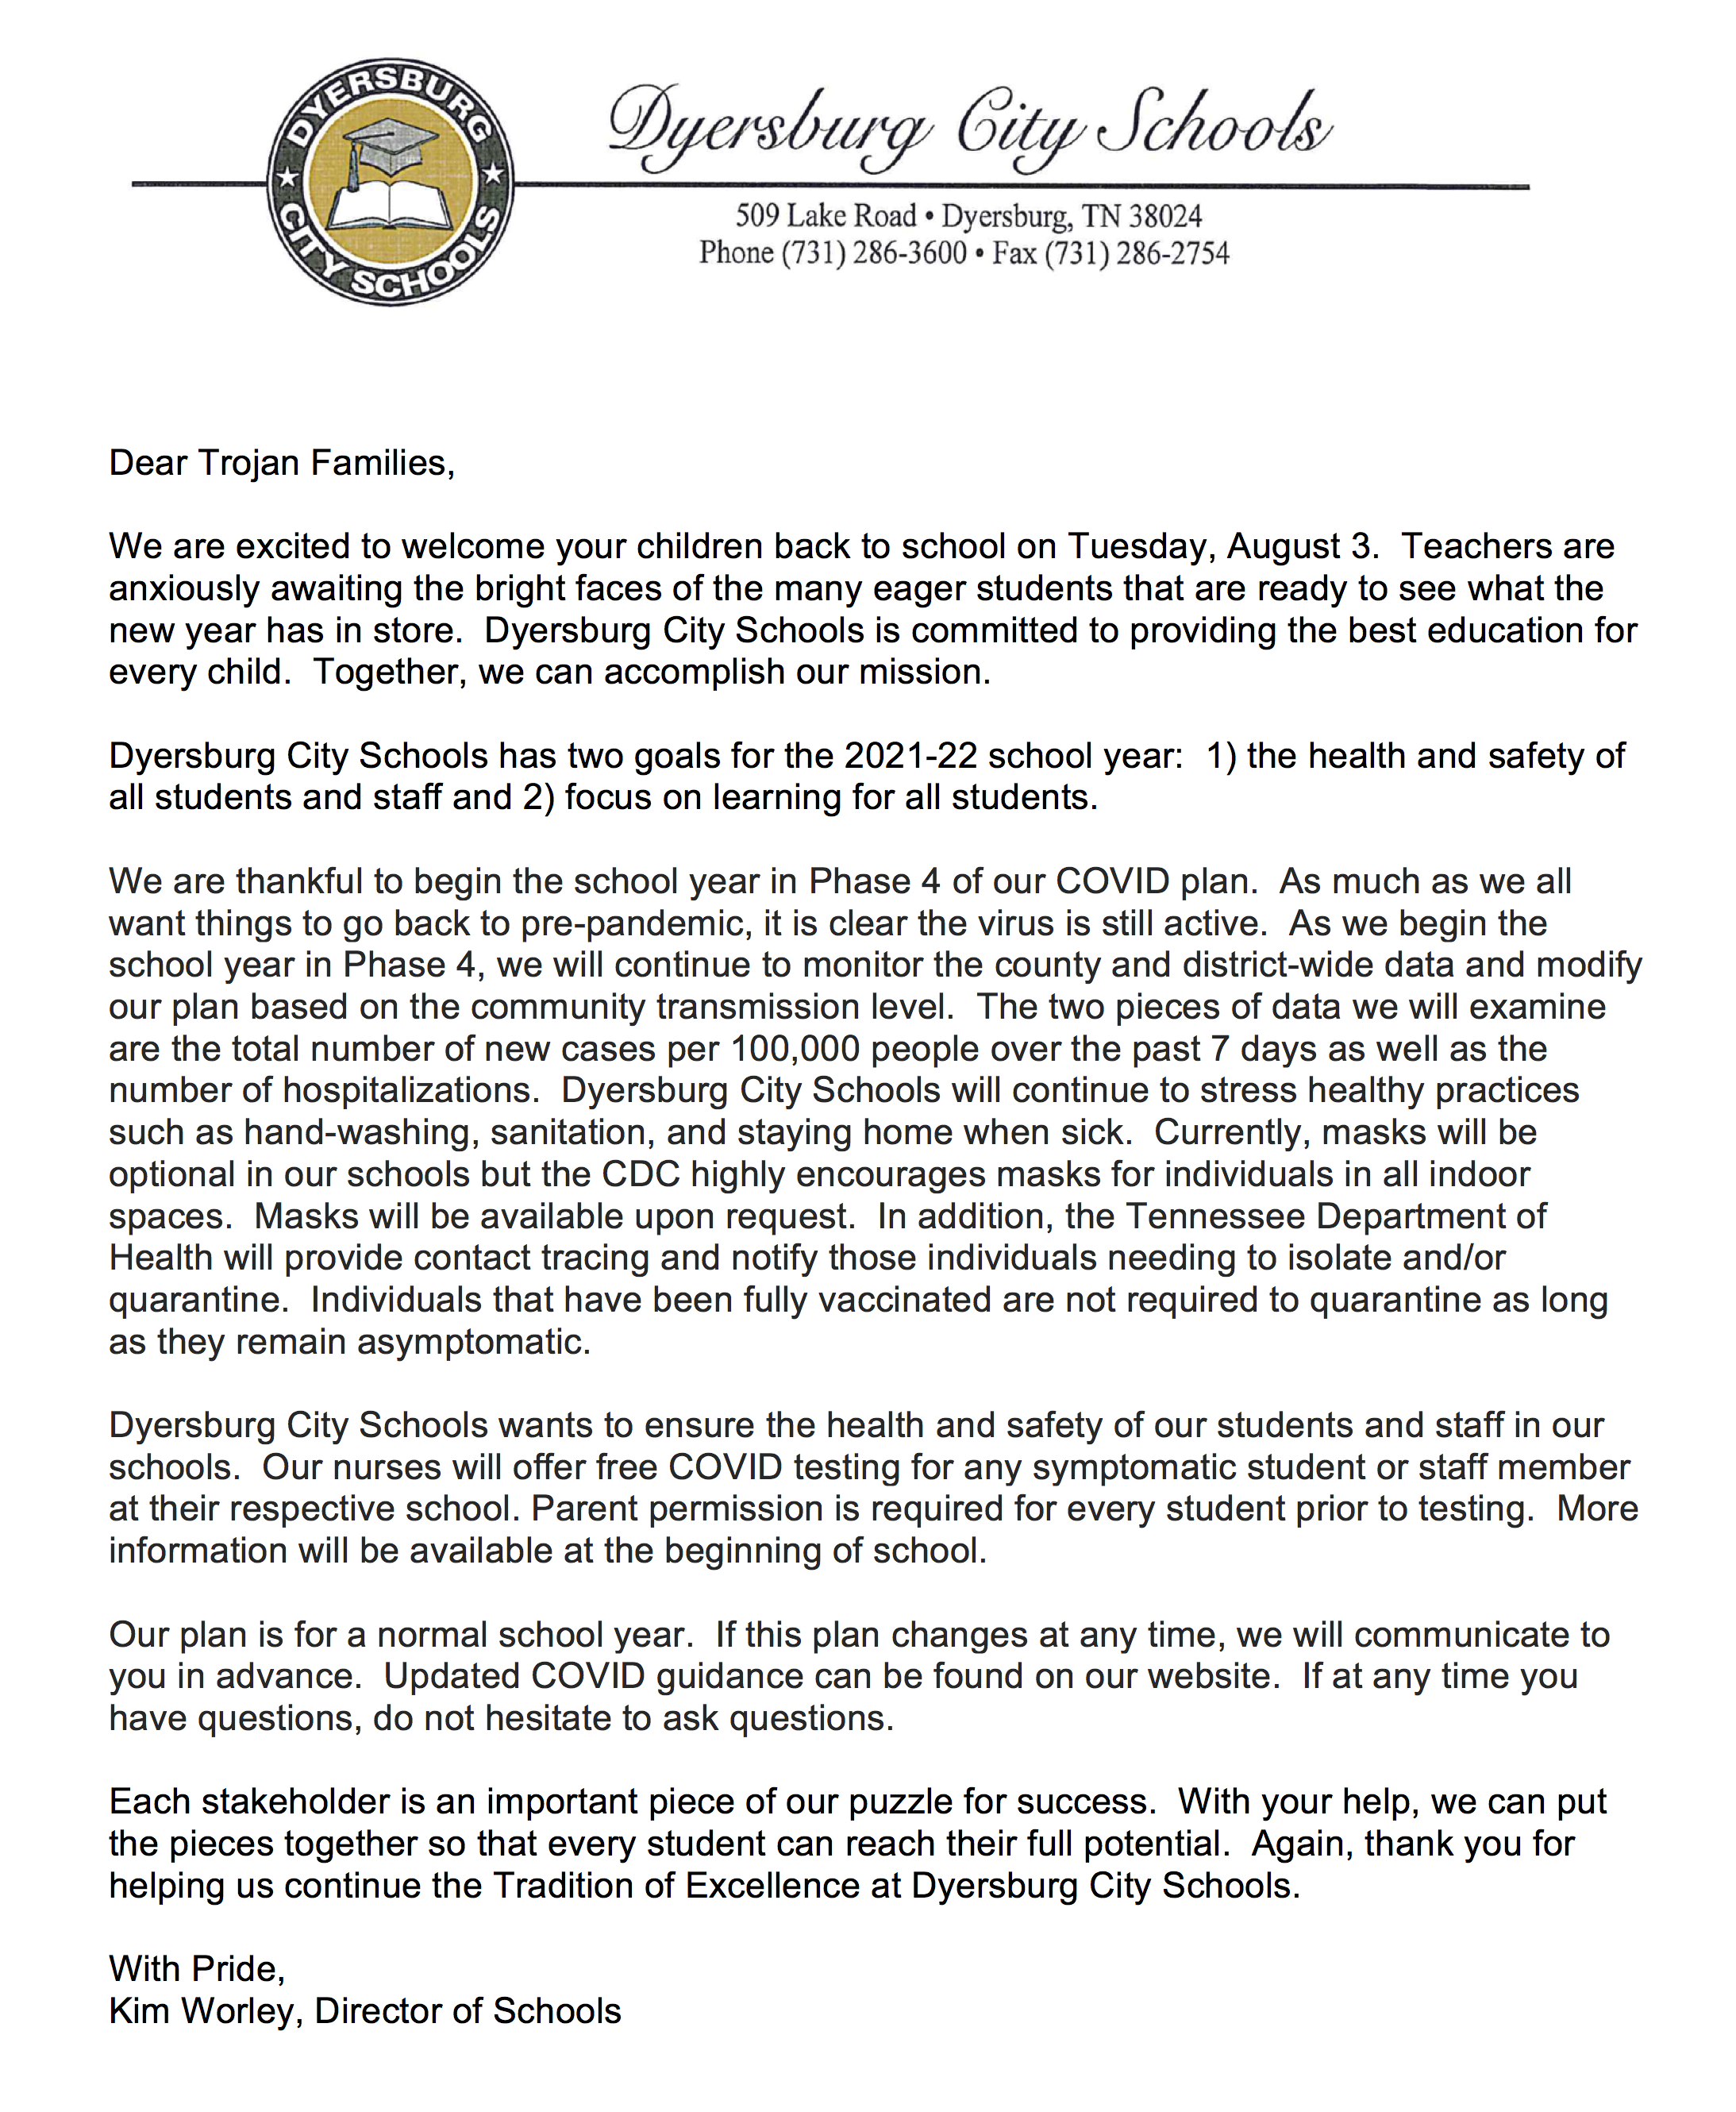 July 29, 2021 Letter from Kim Worley